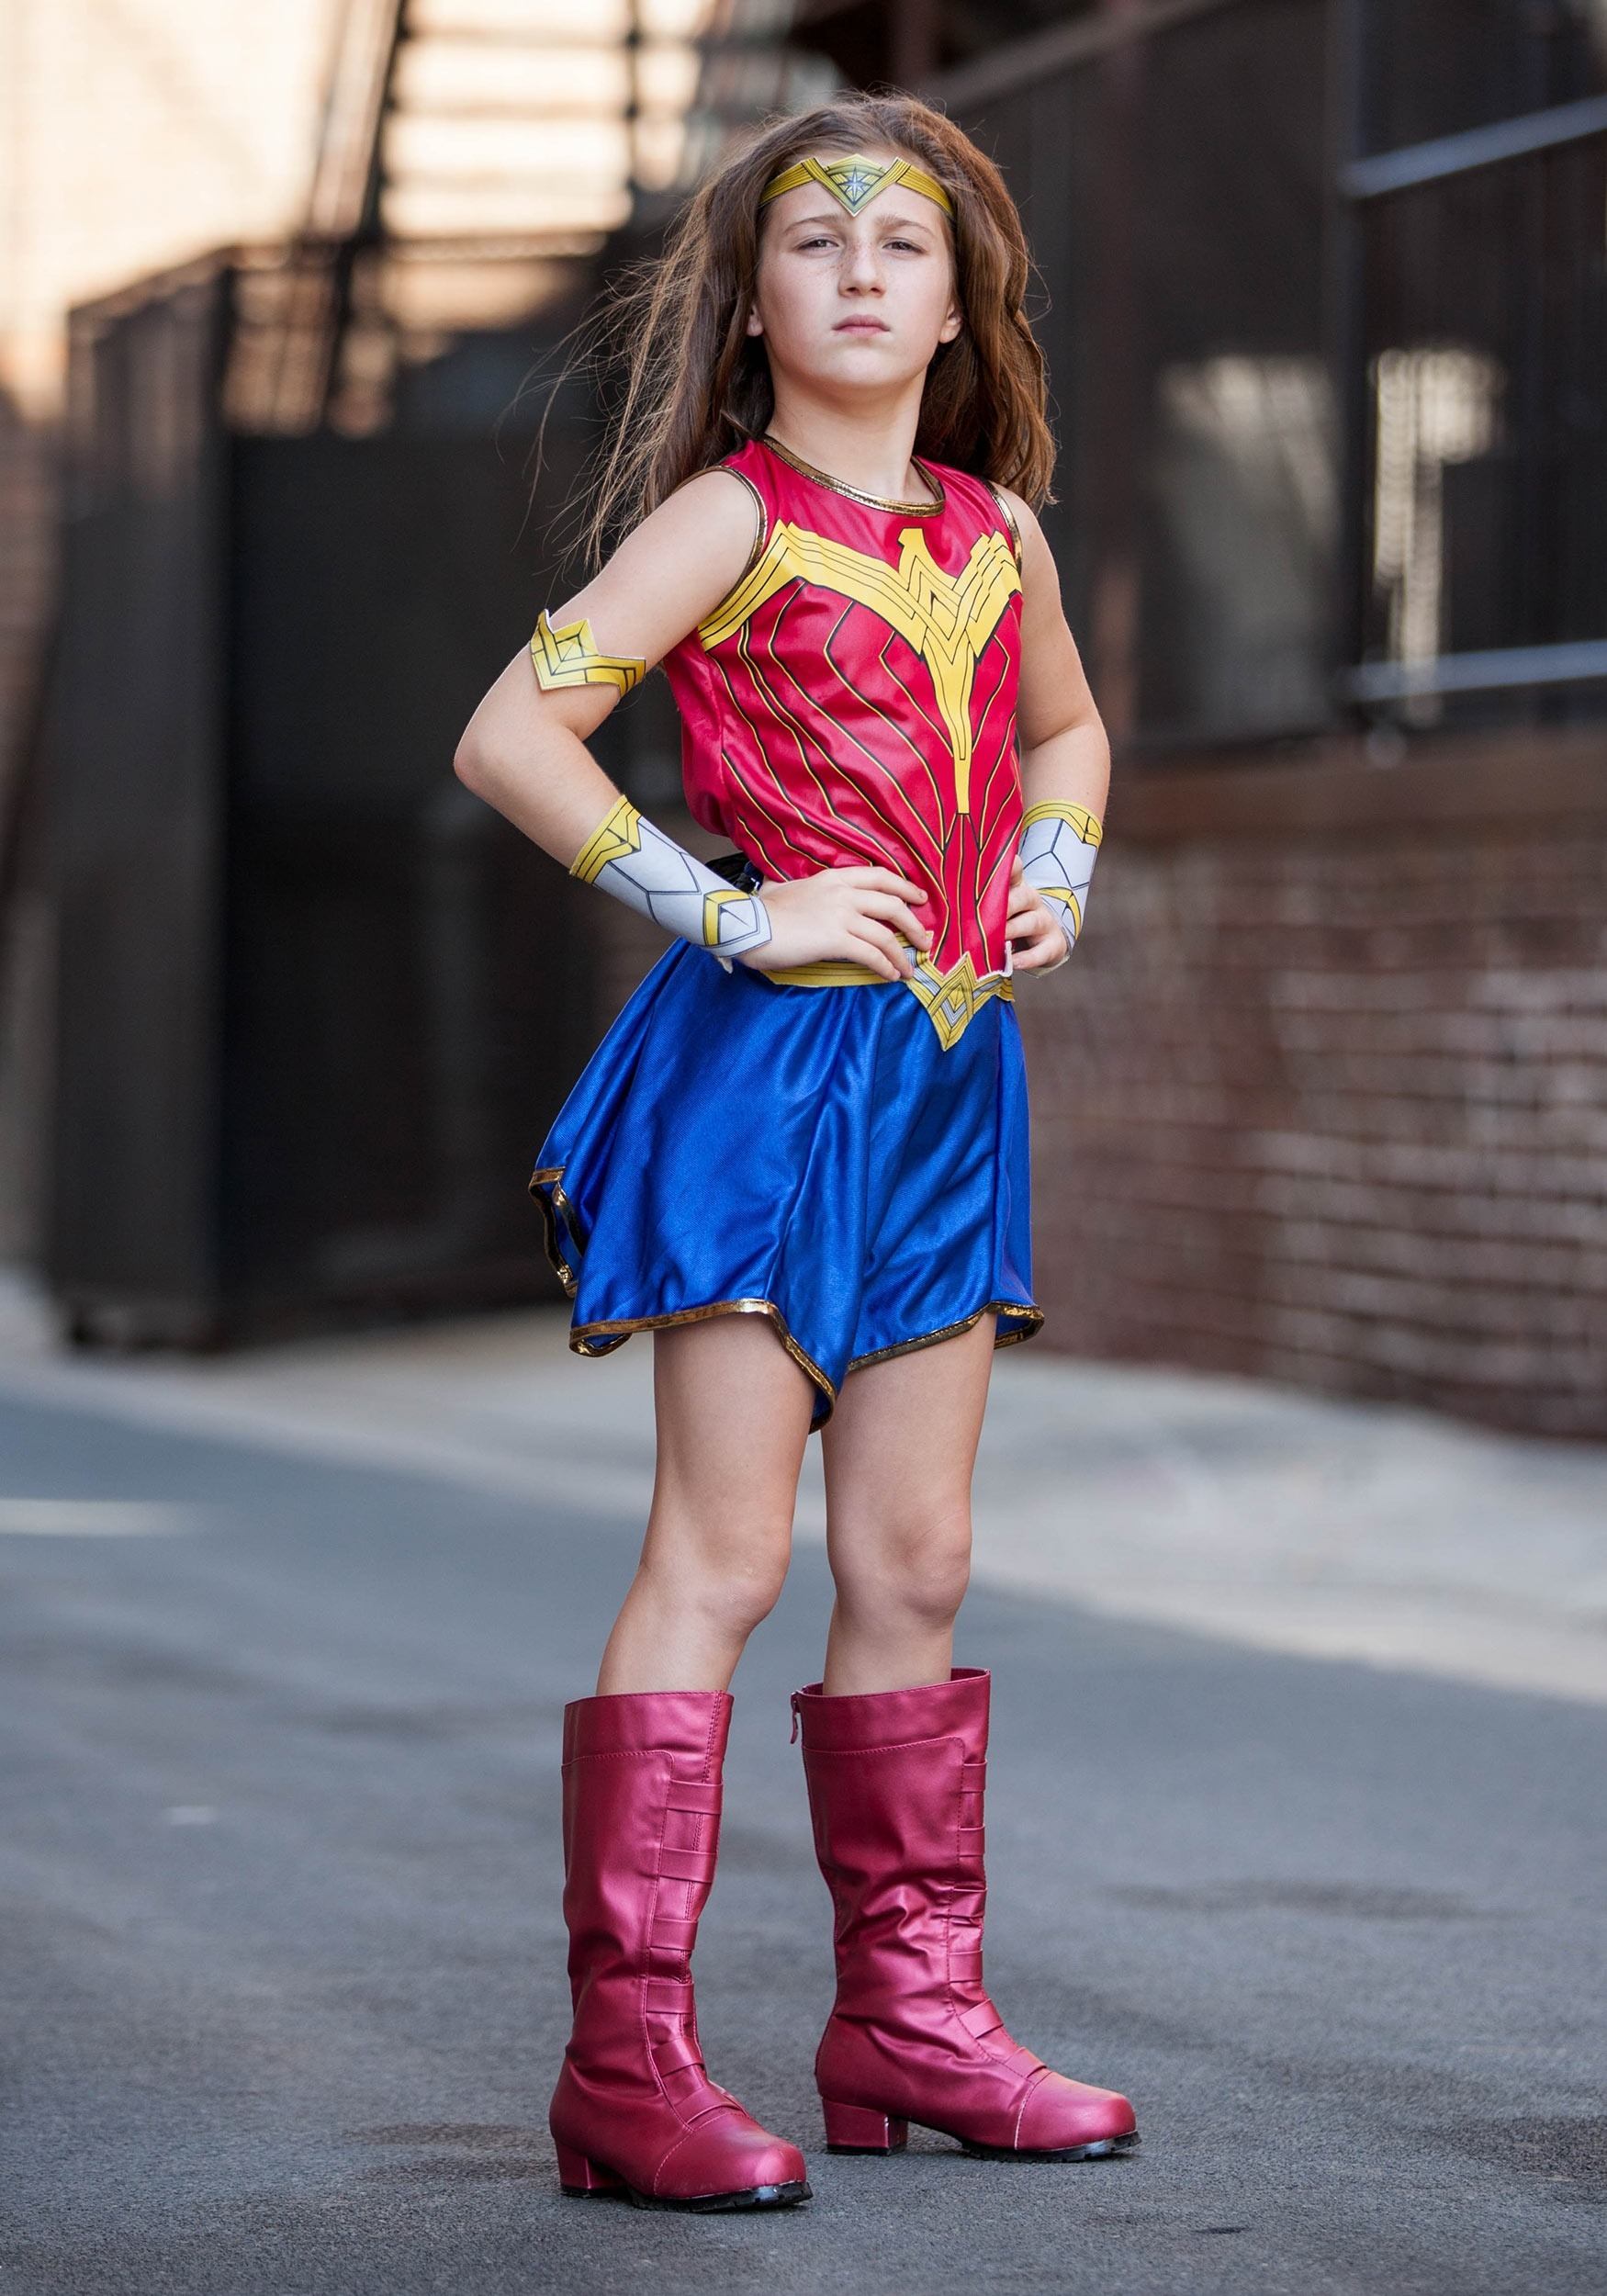 Child Dawn Of Justice Wonder Woman Costume-3180